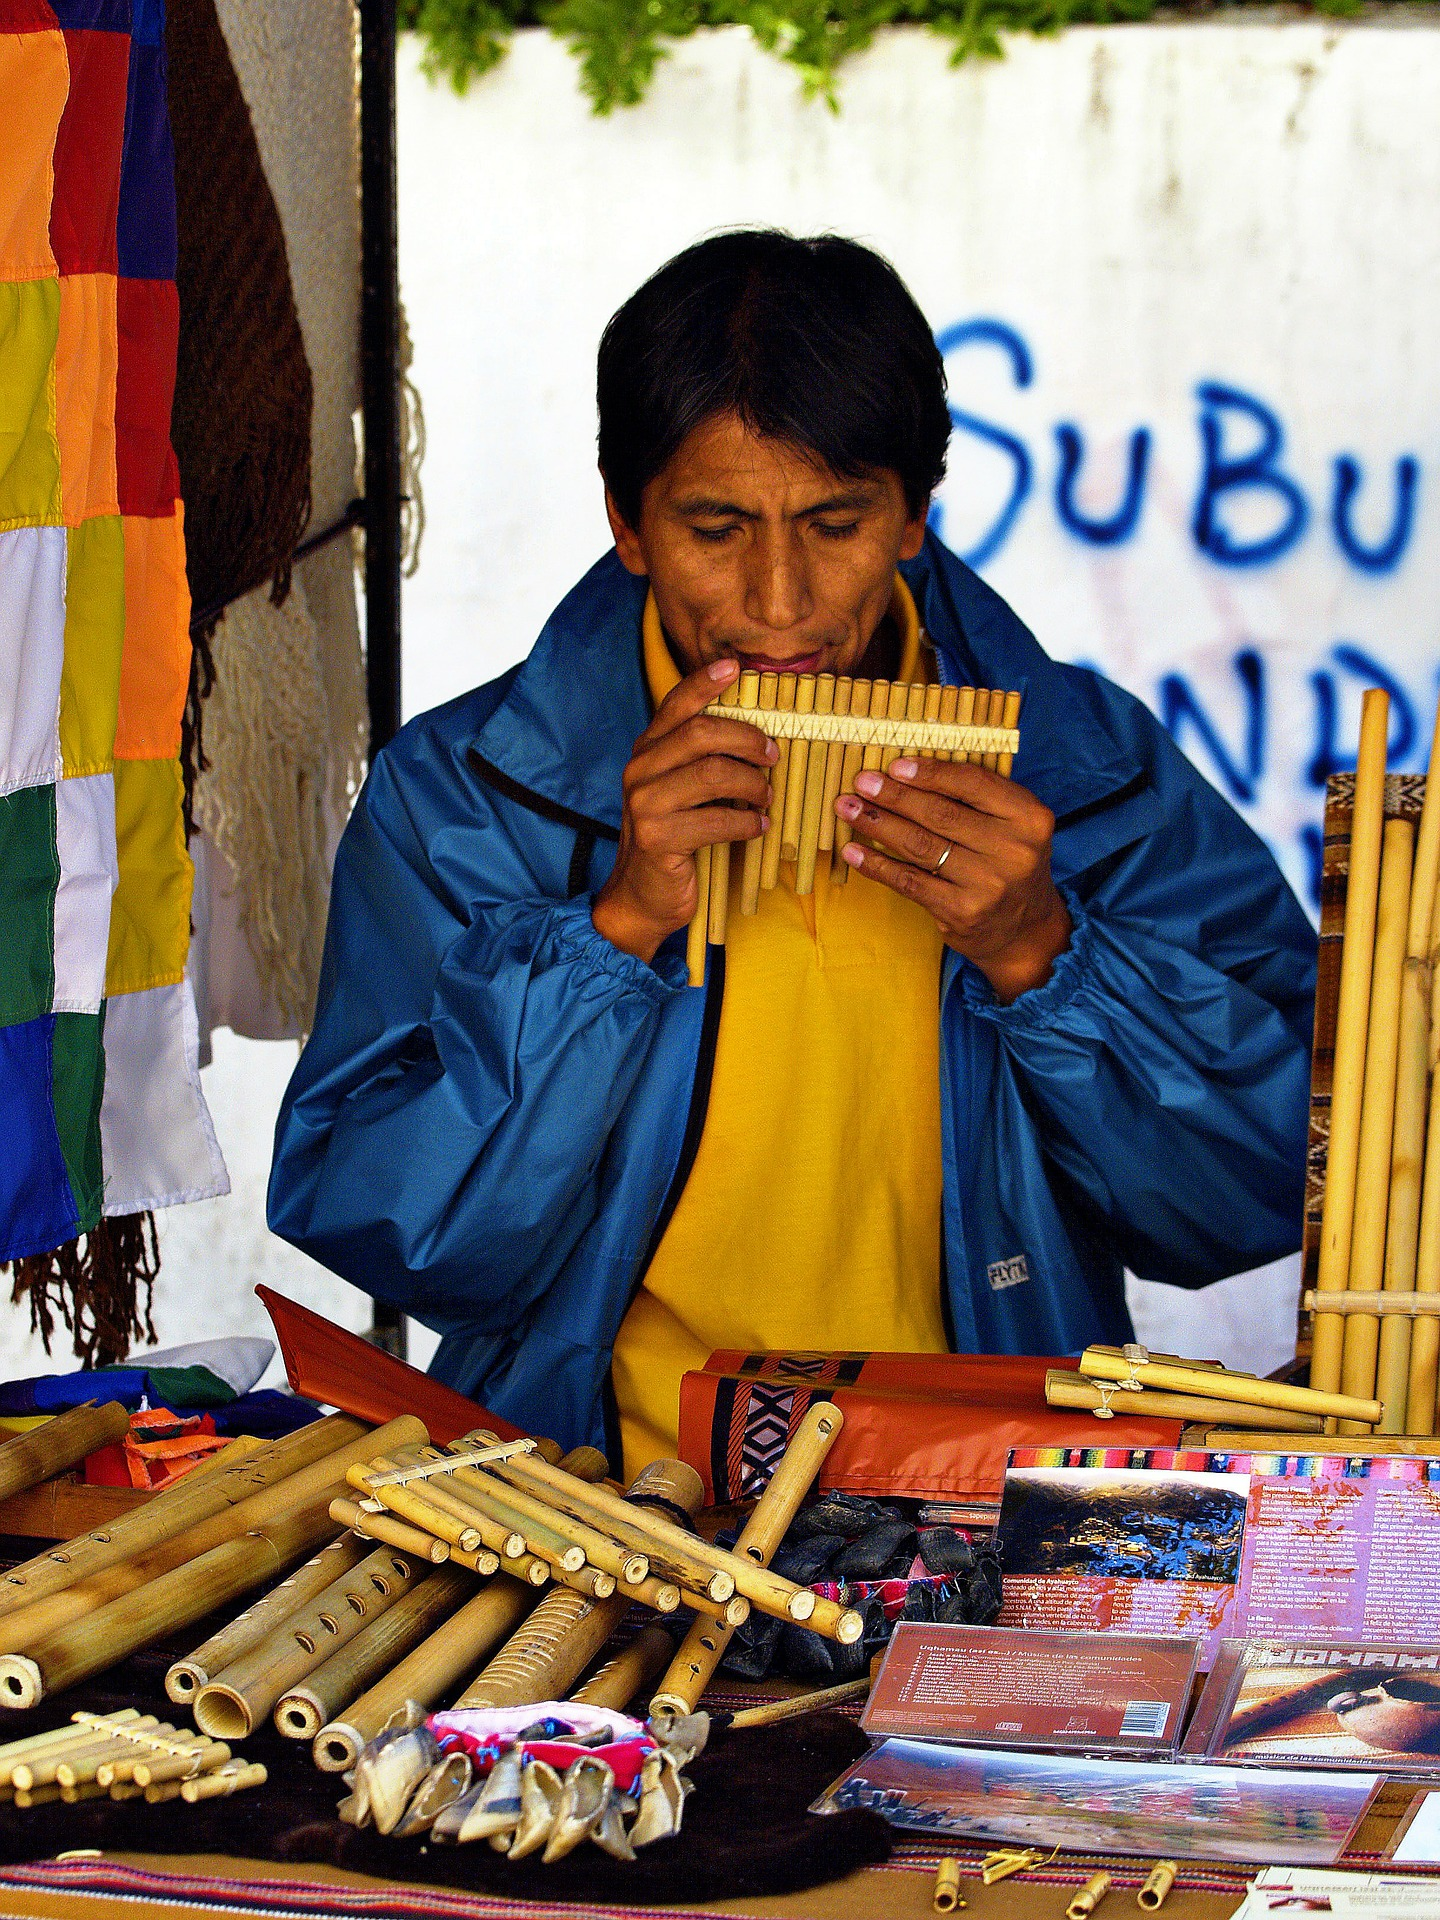 panpipes medieval instruments